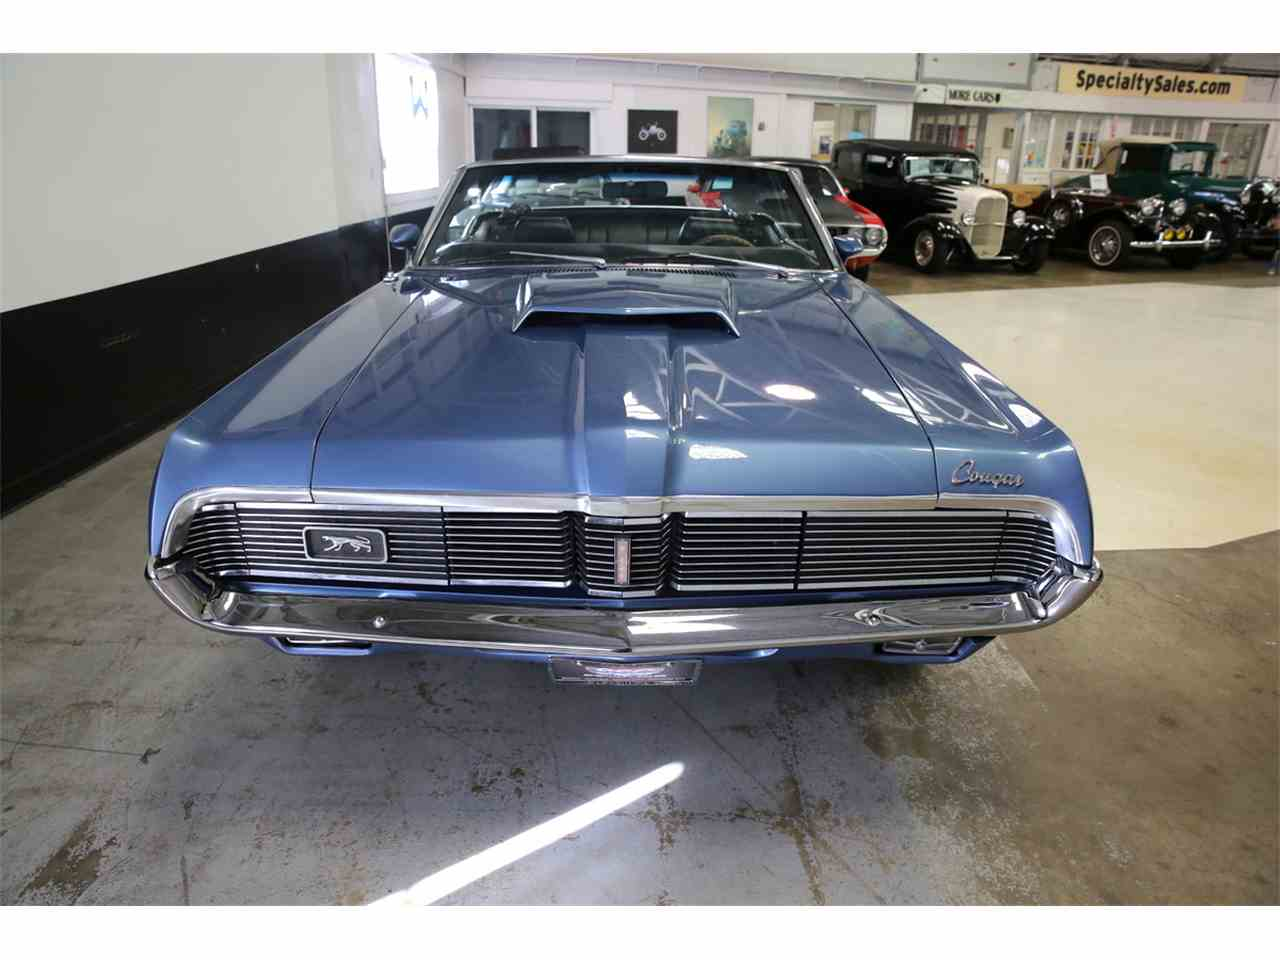 Large Picture of Classic 1969 Cougar located in Fairfield California - $26,000.00 Offered by Specialty Sales Classics - IEVB